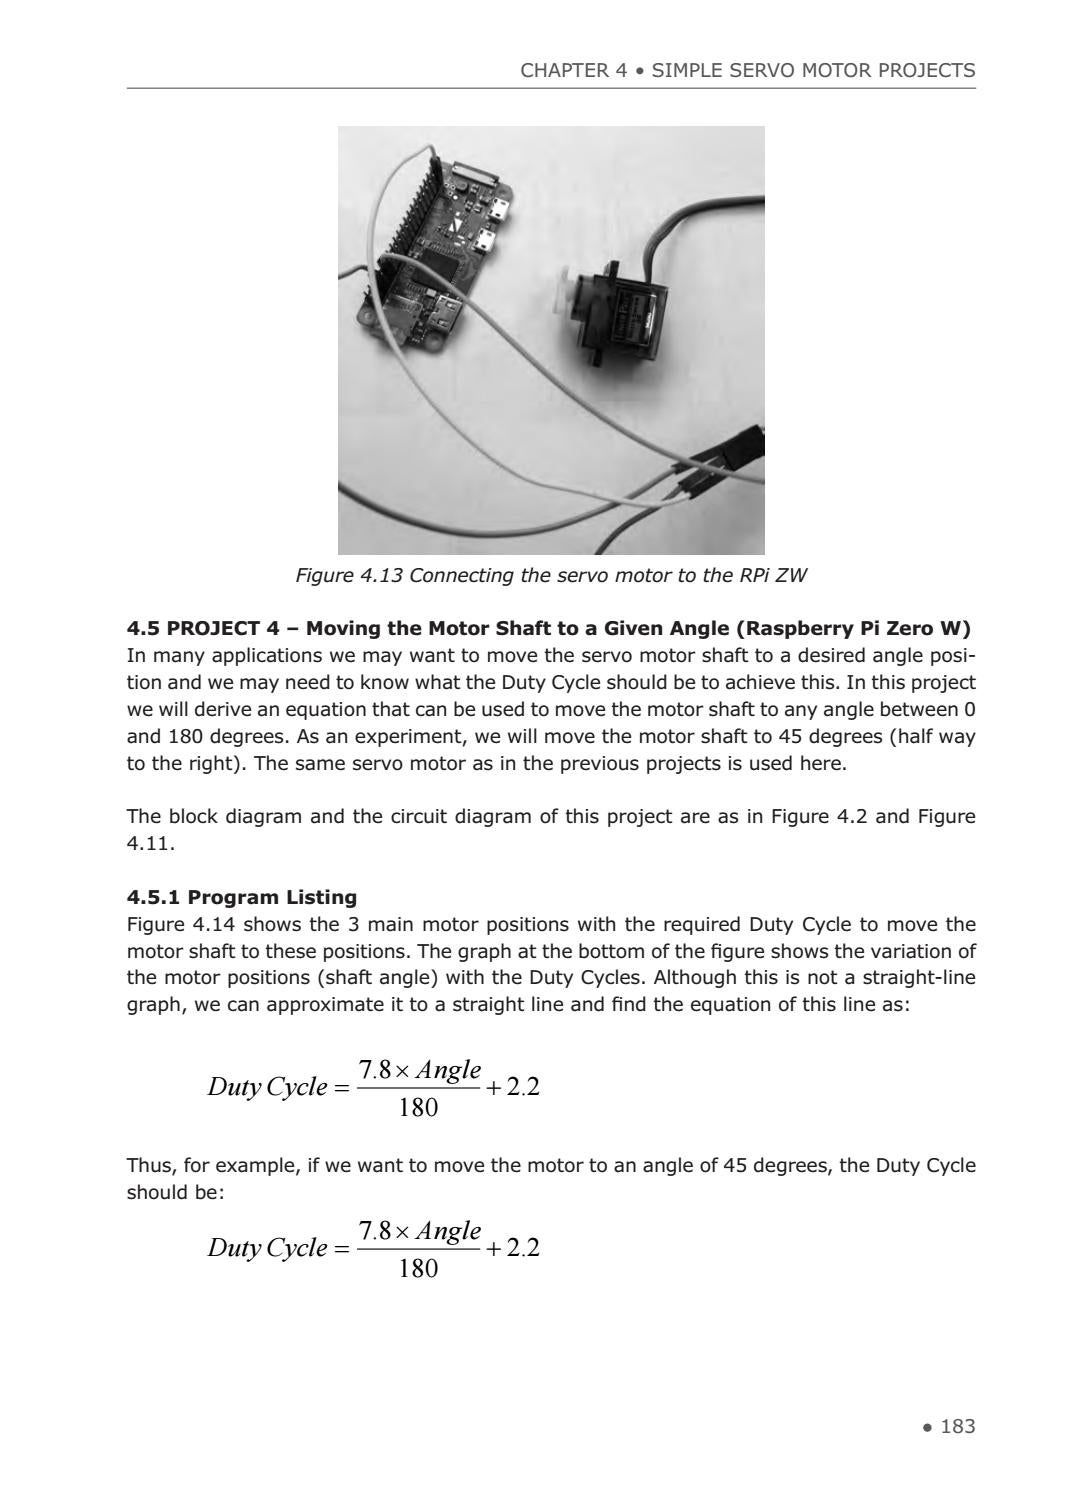 Motor Control Projects With Arduino And Raspberry Pi By Elektor Issuu Wiring Diagram Fig 1 7 Is Similar To A Single Line Block